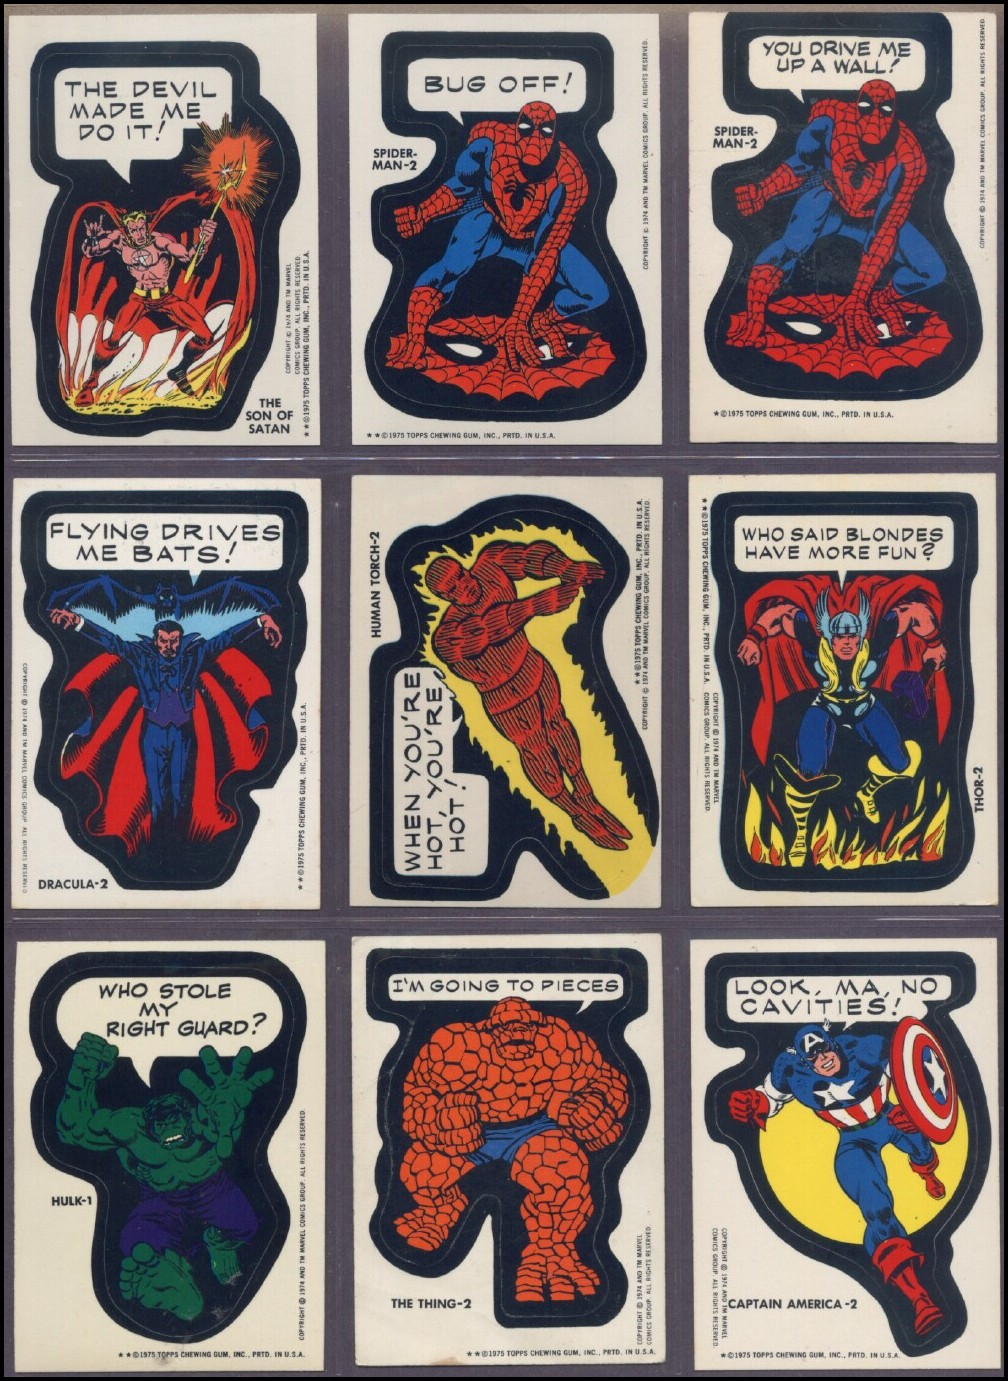 Fantasy Ink Marvel Superhero Stickers, 1975. Computer Education Logo. Clothes Signs. Love Art Decals. Problem Solving Banners. Printable Free Banners. Novel Logo. Store Signs Of Stroke. Bmp Banners